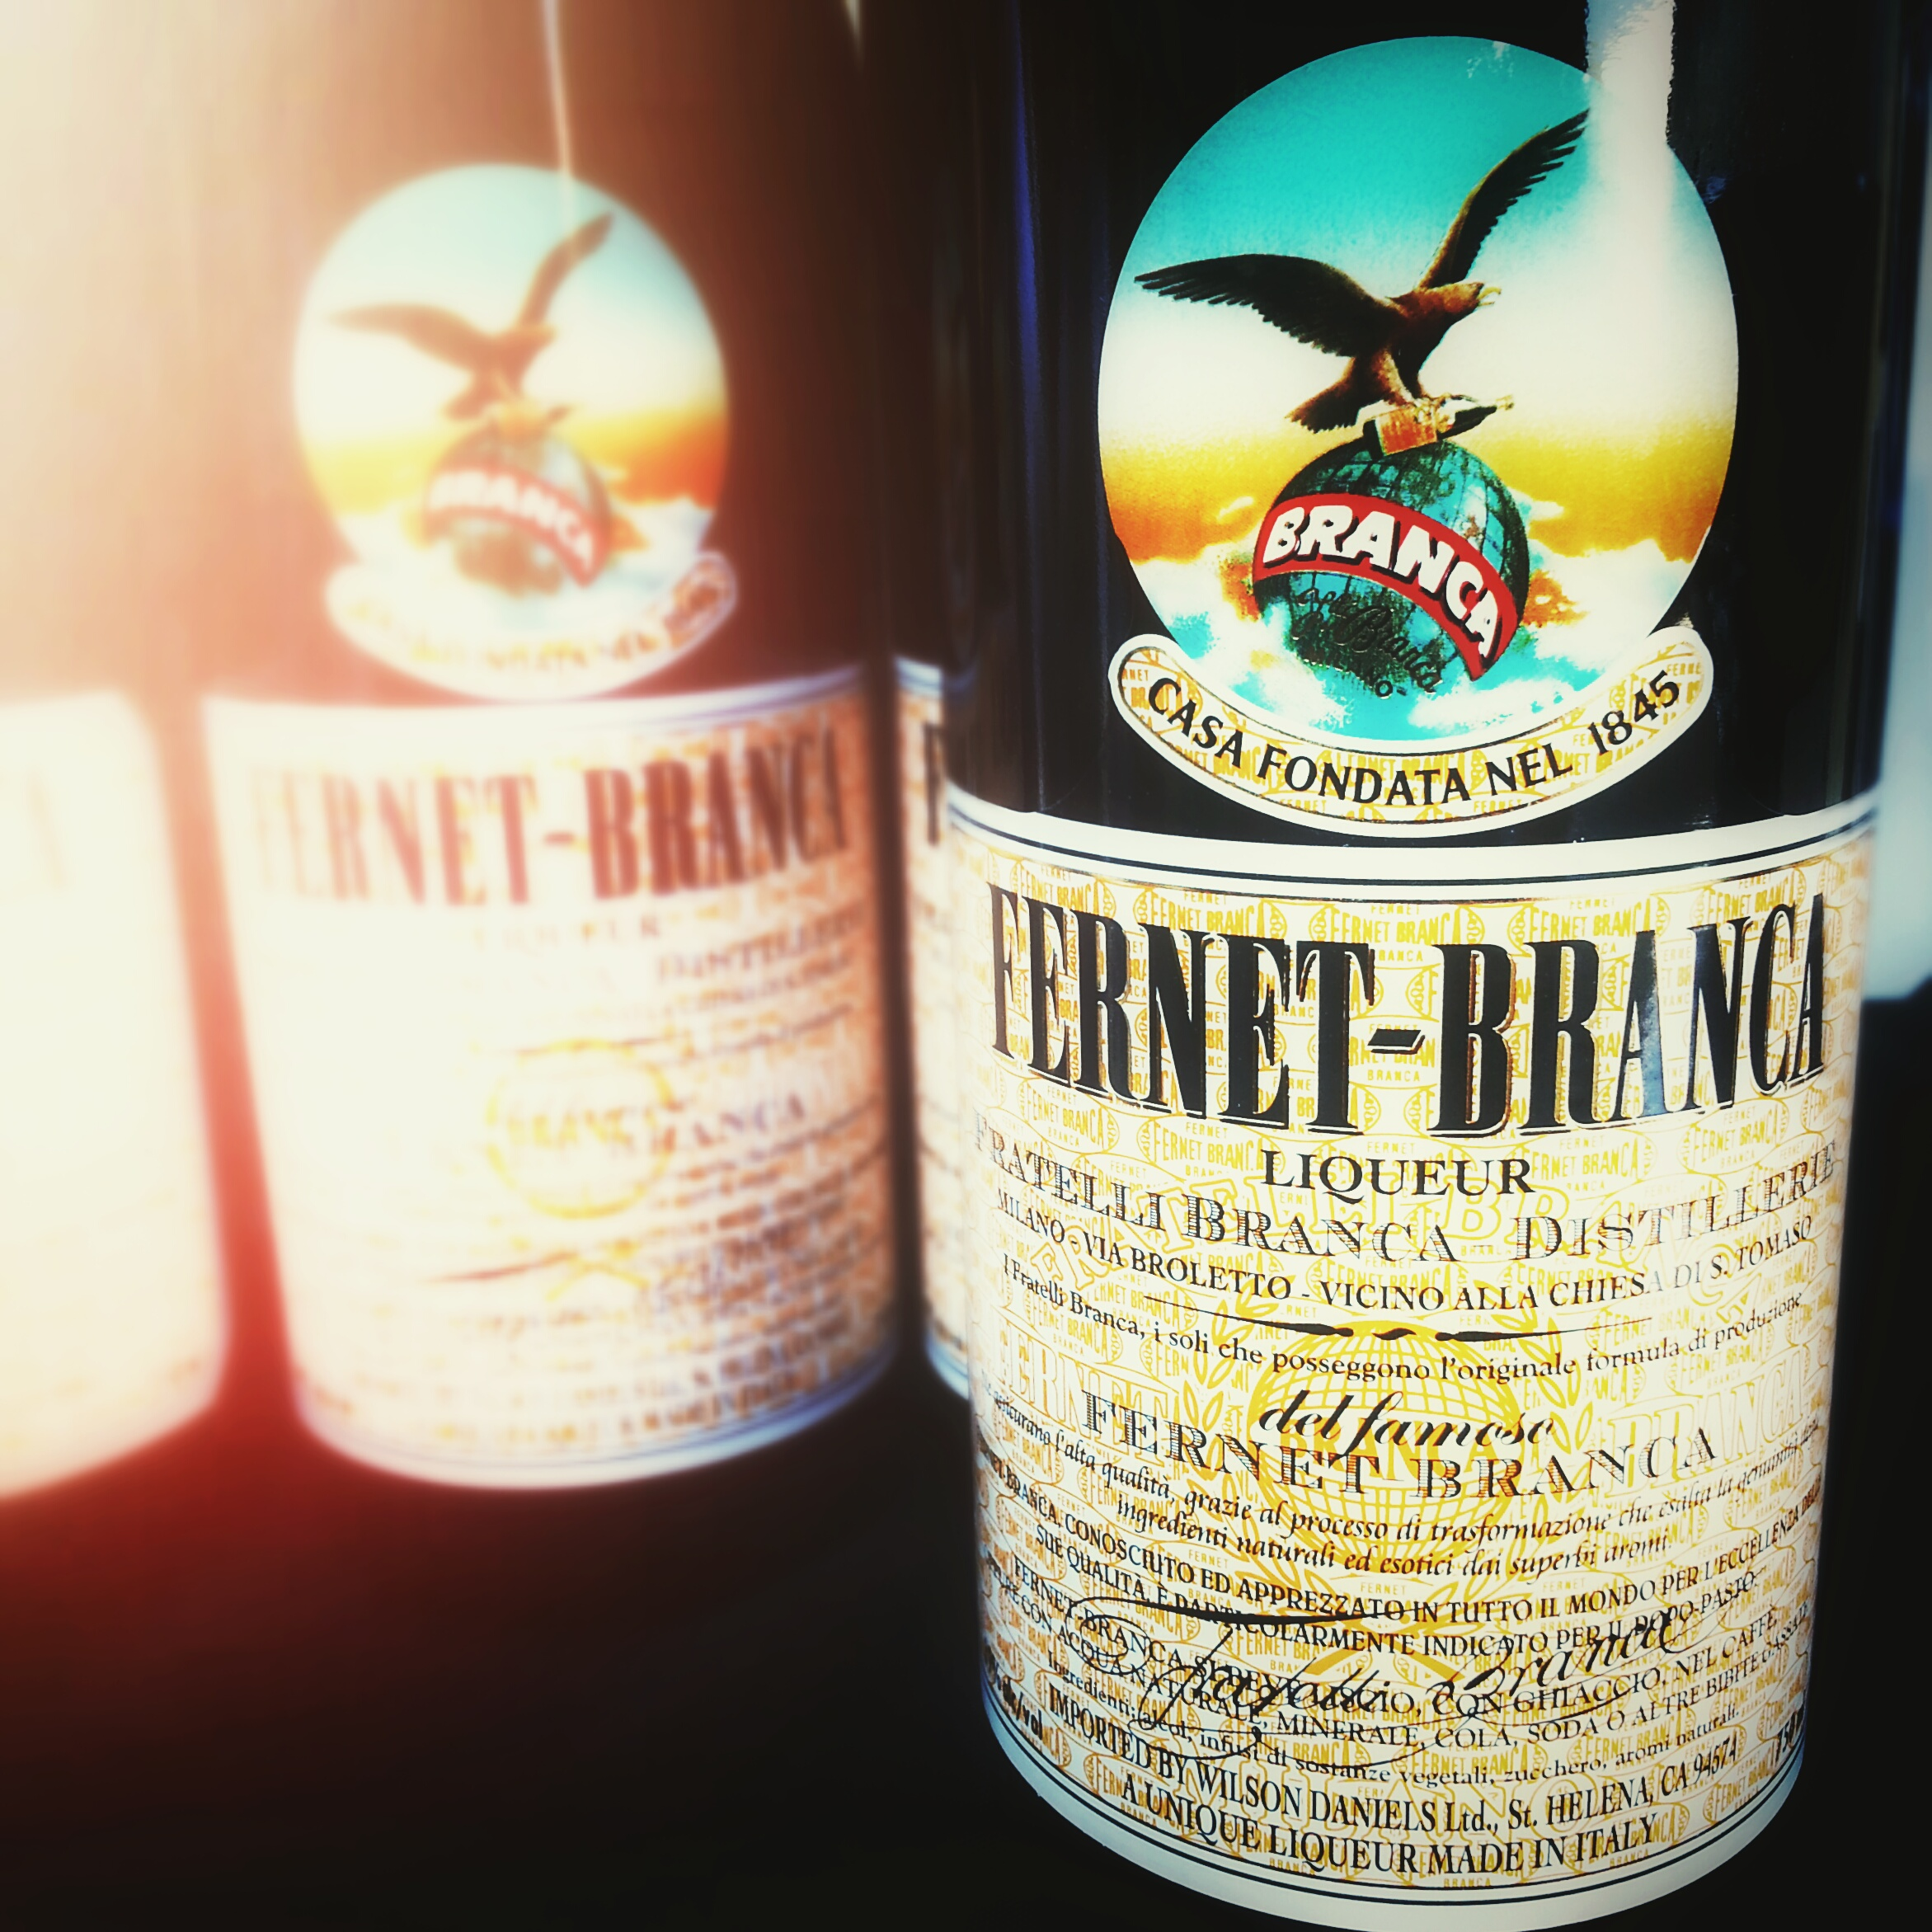 Fernet Branca , a bitter, aromatic spirit from Italy; made with number of herbs and spices.